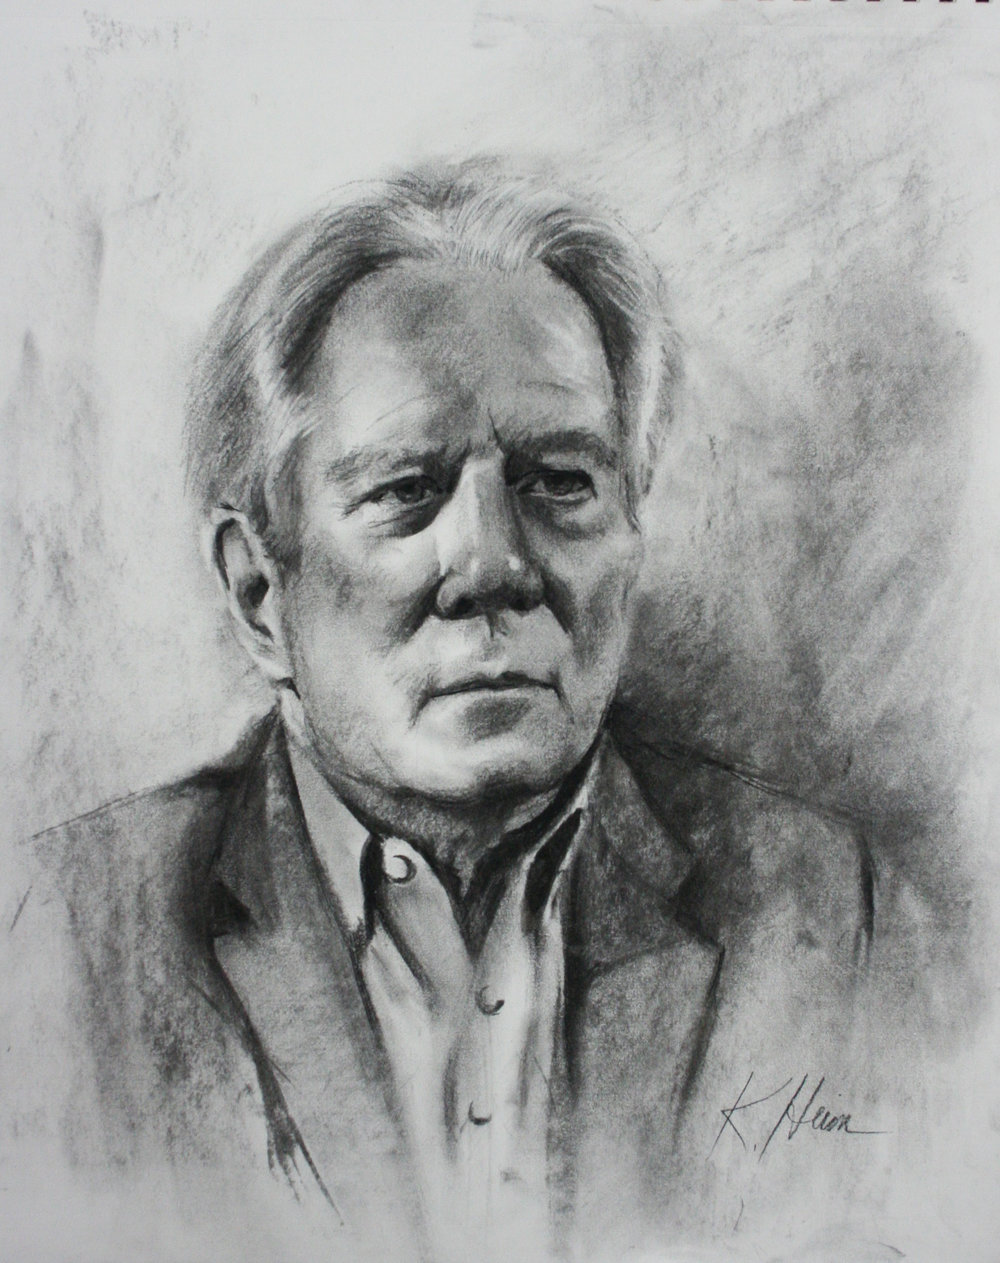 Kathryn Heim did this 3-hour charcoal drawing.